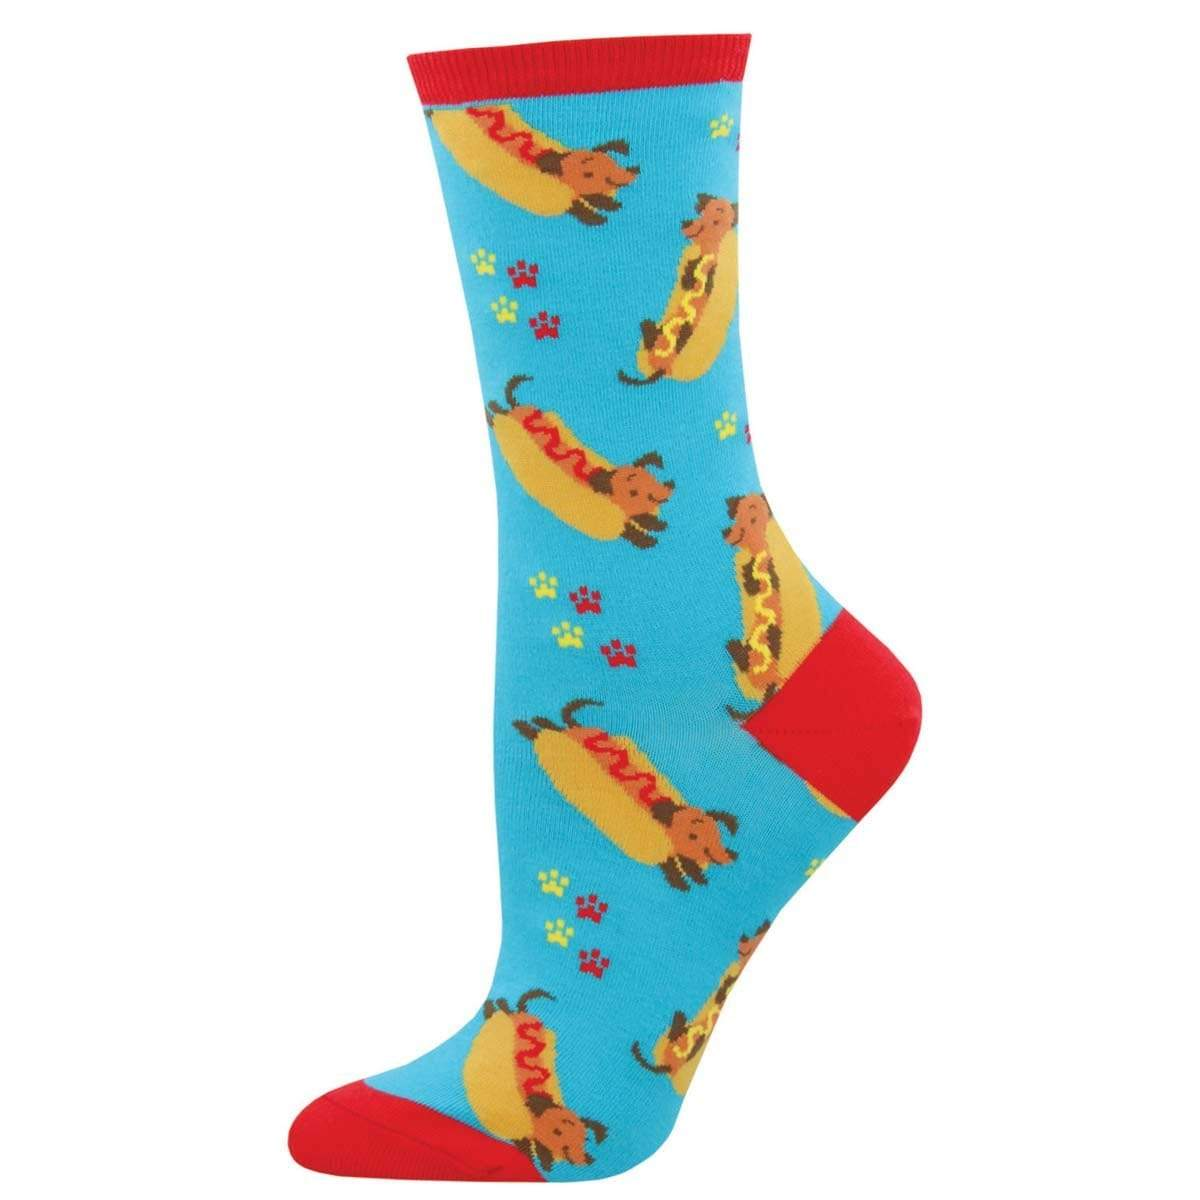 Socksmith Socks Wiener Dog